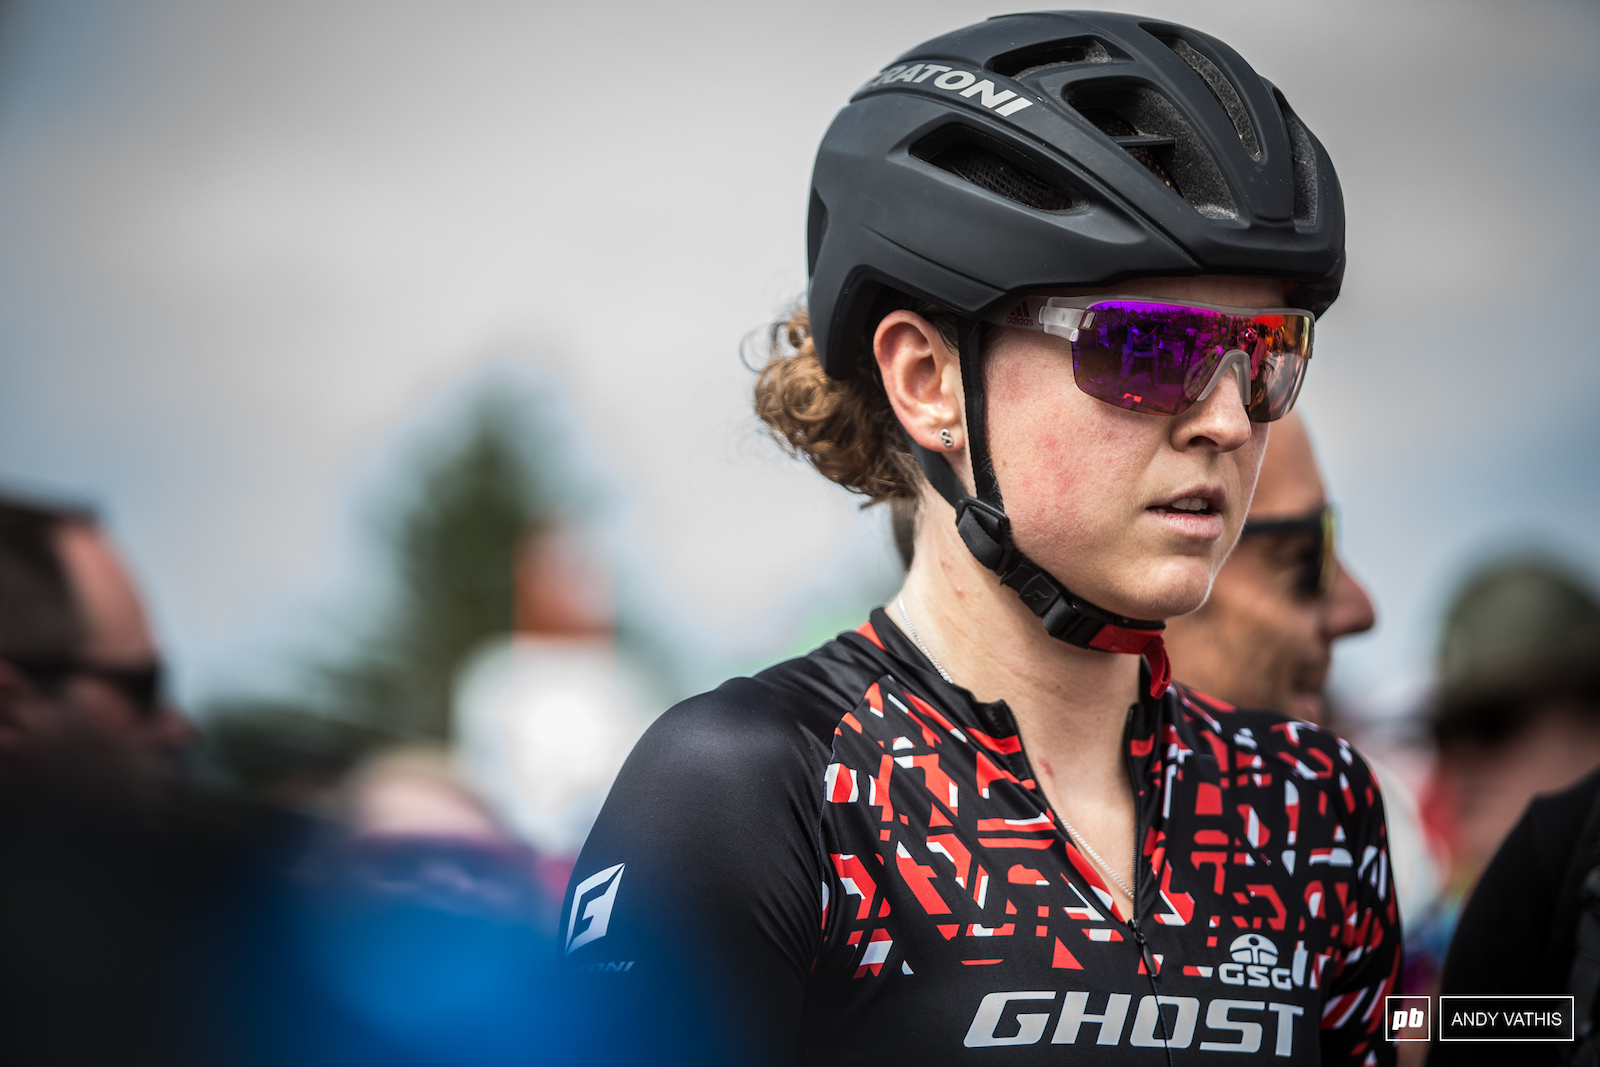 Anne Terpstra looking to finish 2019 on a high note and this track suited her well.